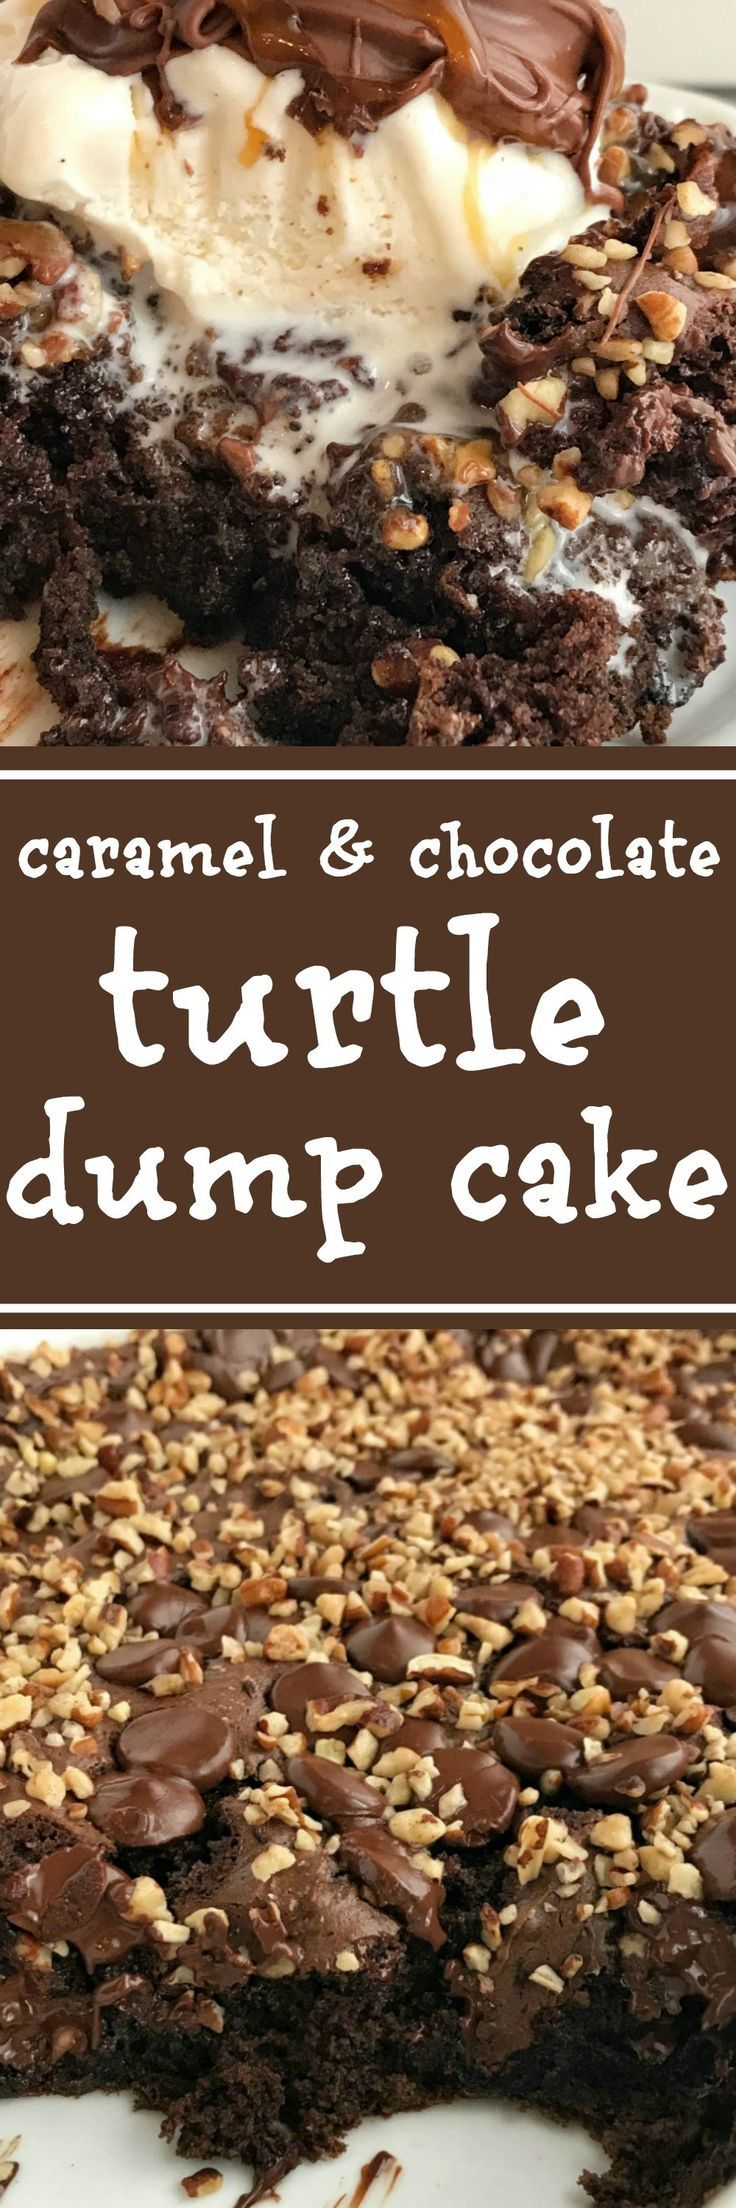 Turtle Dump Cake | Posted By: DebbieNet.com